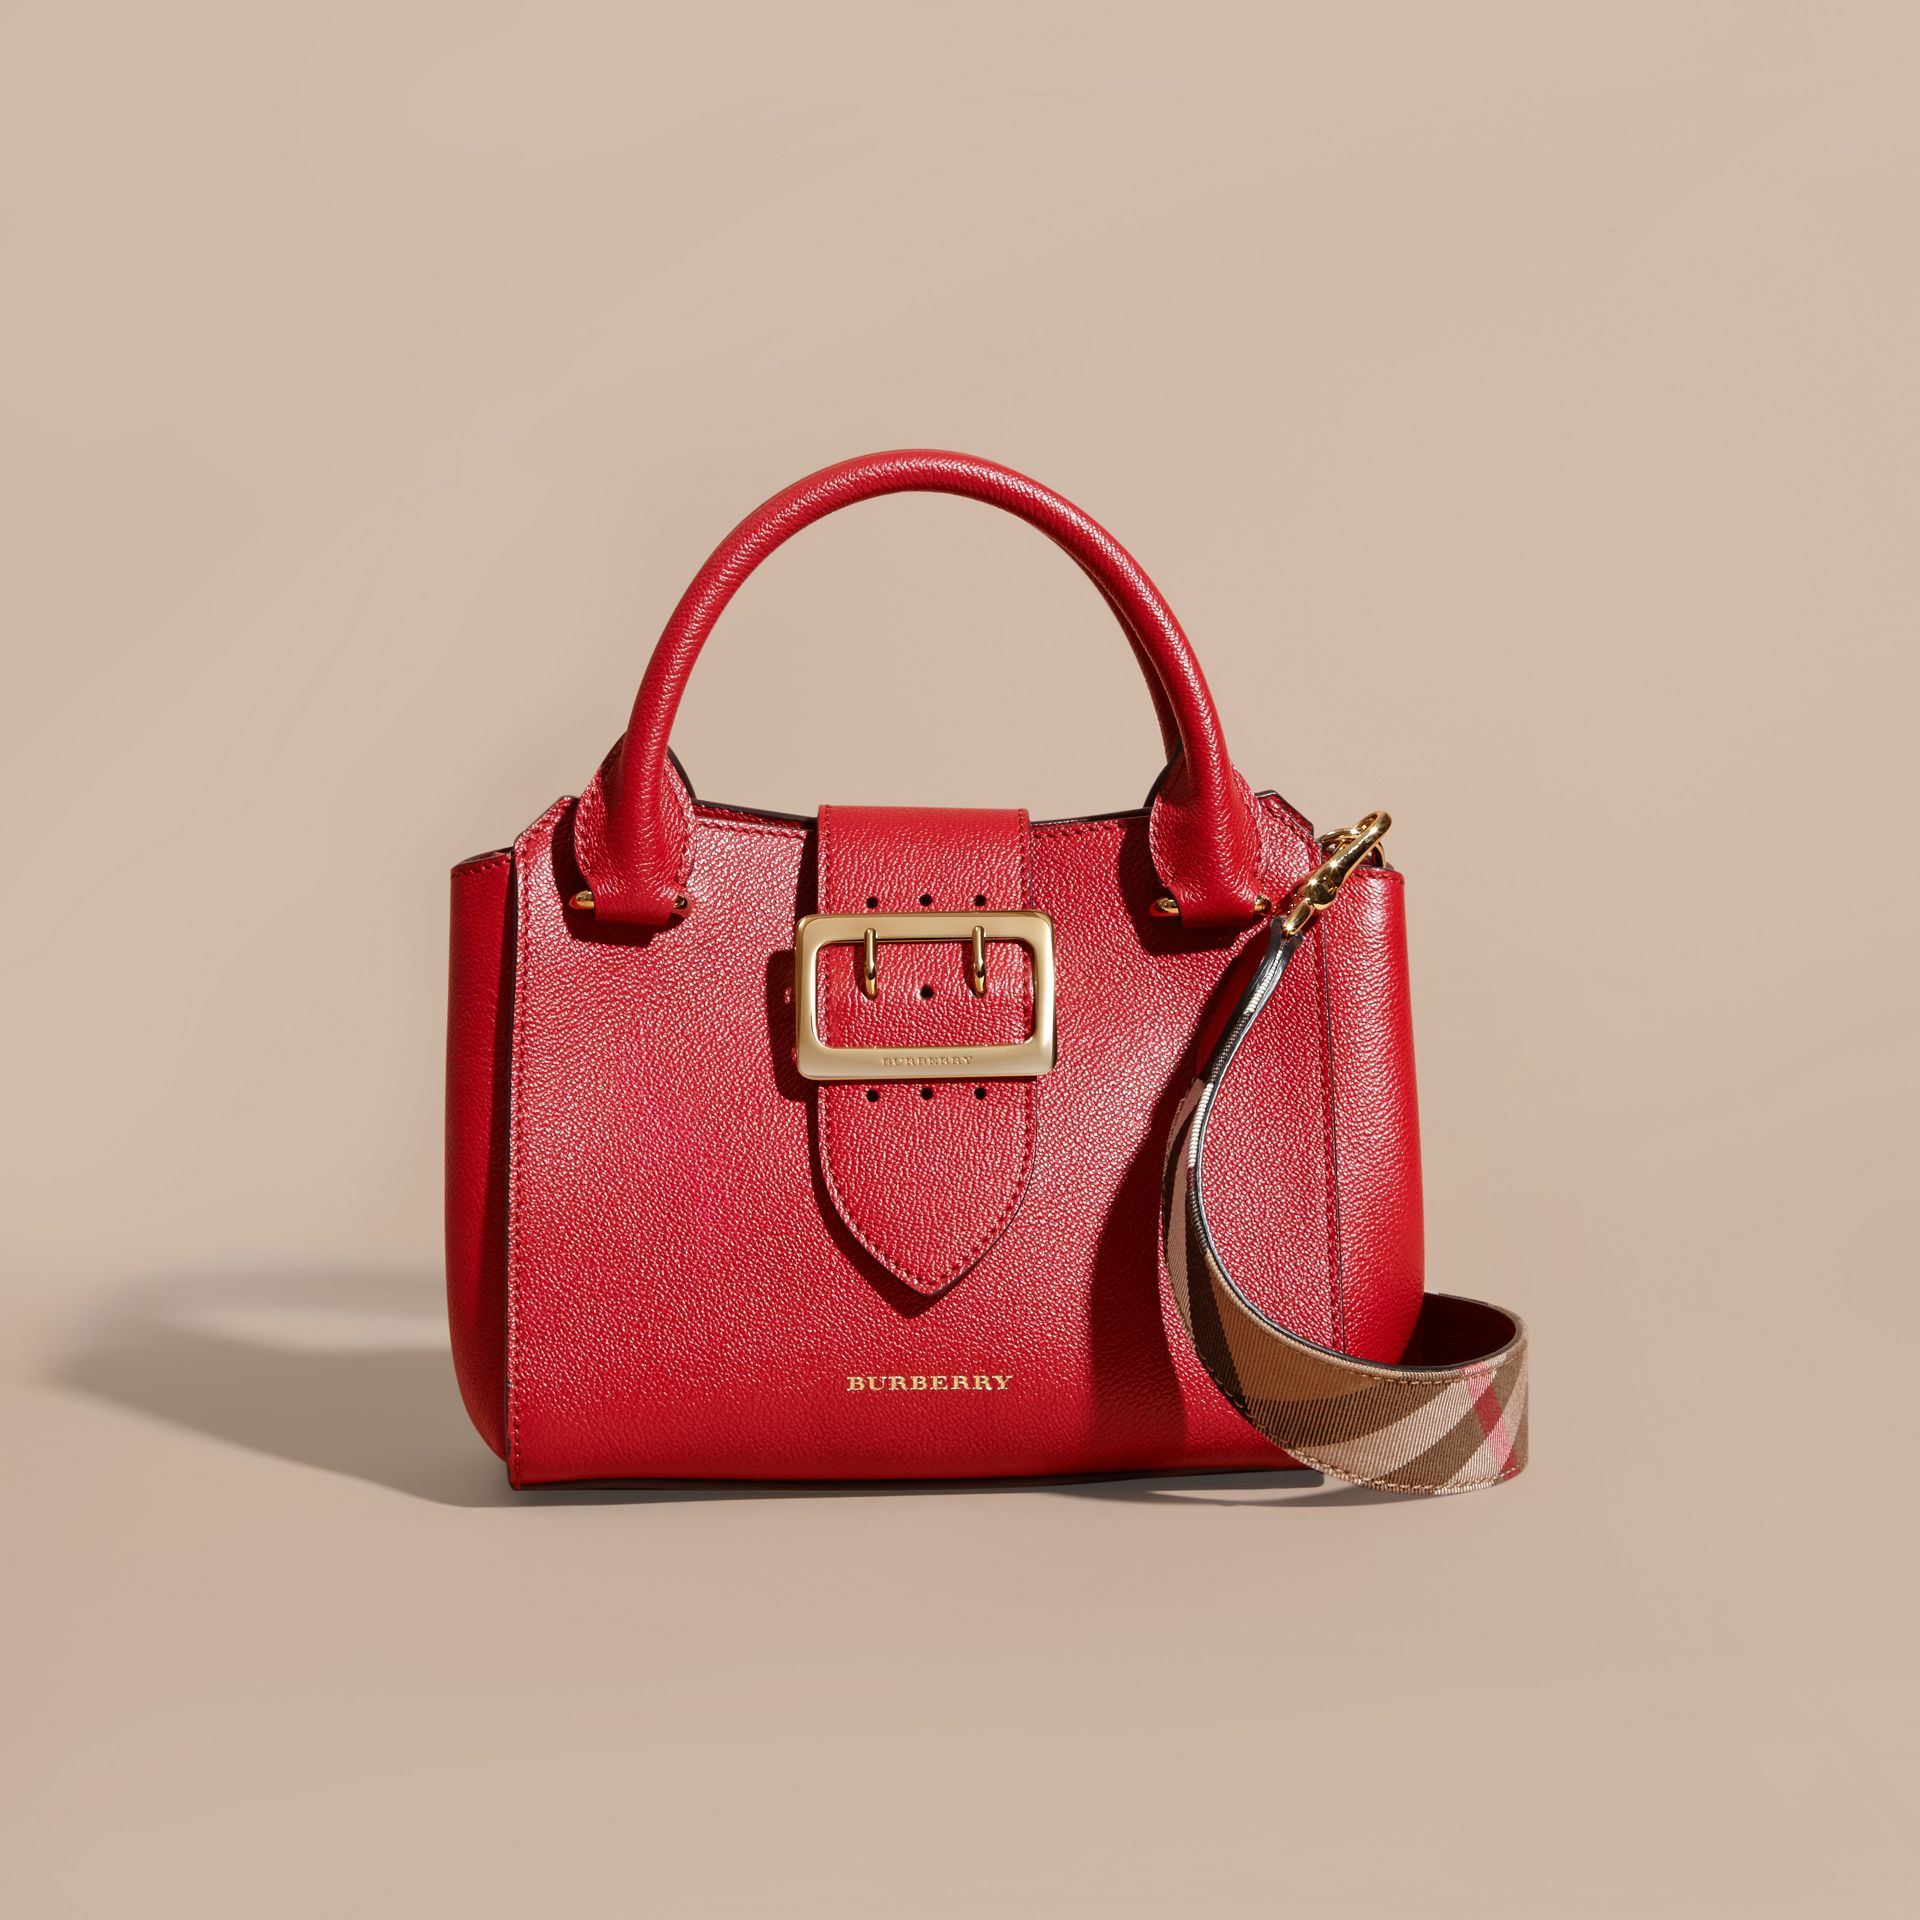 Parade red The Small Buckle Tote in Grainy Leather Parade Red - gallery image 7